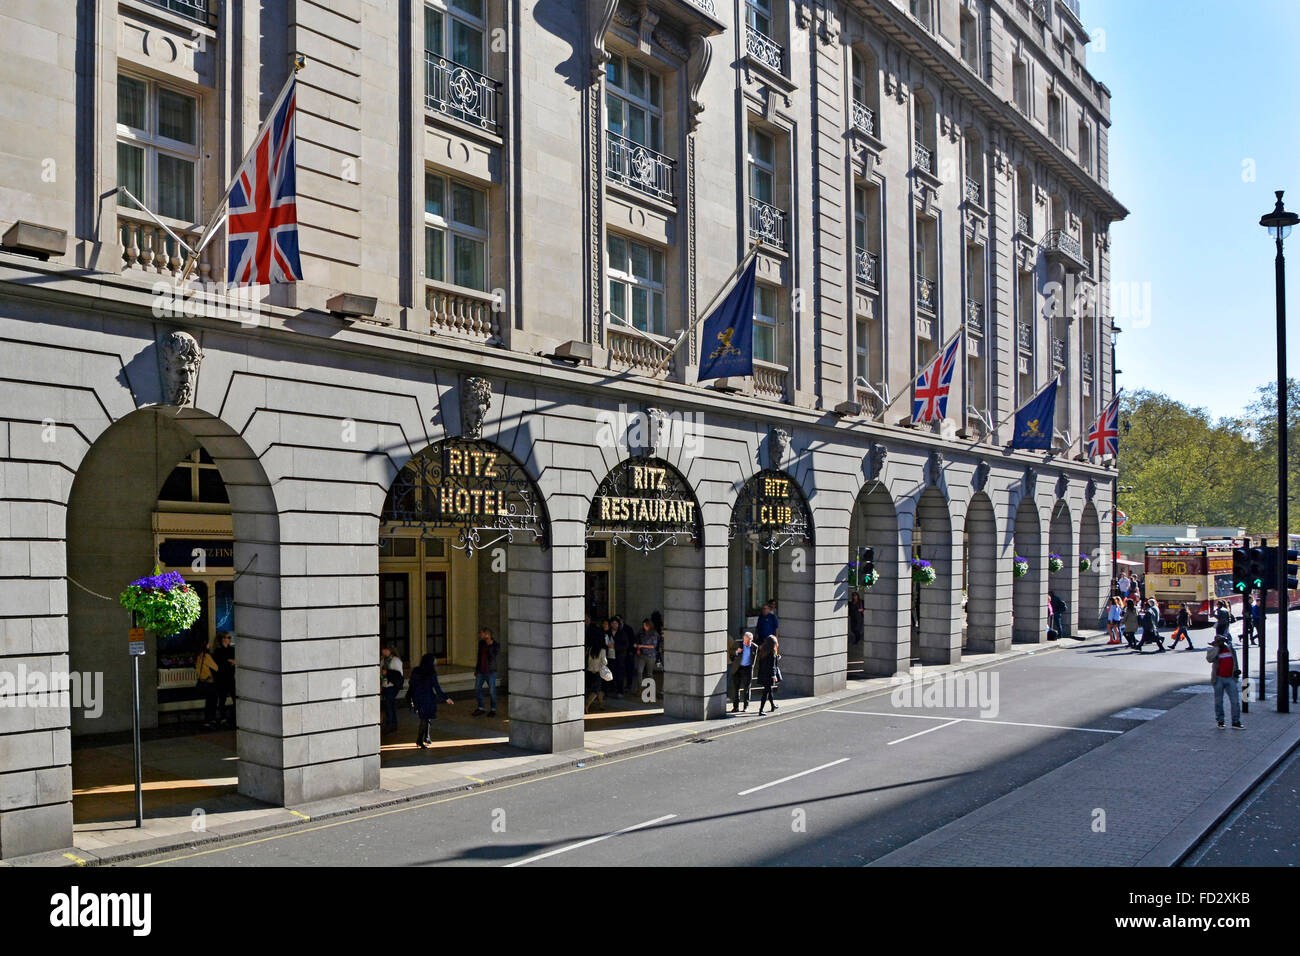 The Ritz Hotel in Piccadilly London - Stock Image